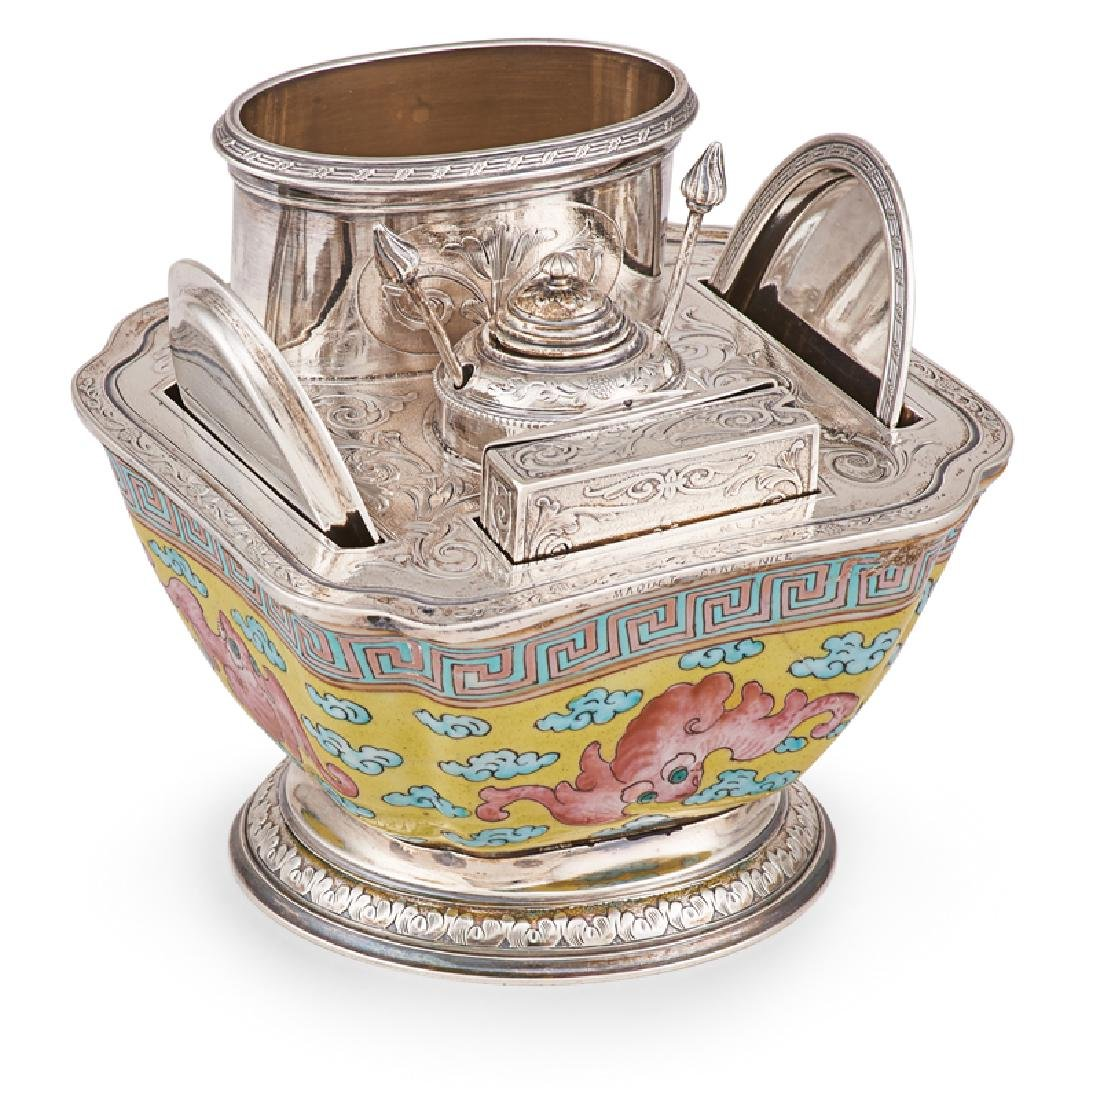 FRENCH SILVER MOUNTED PORCELAIN SMOKING SET